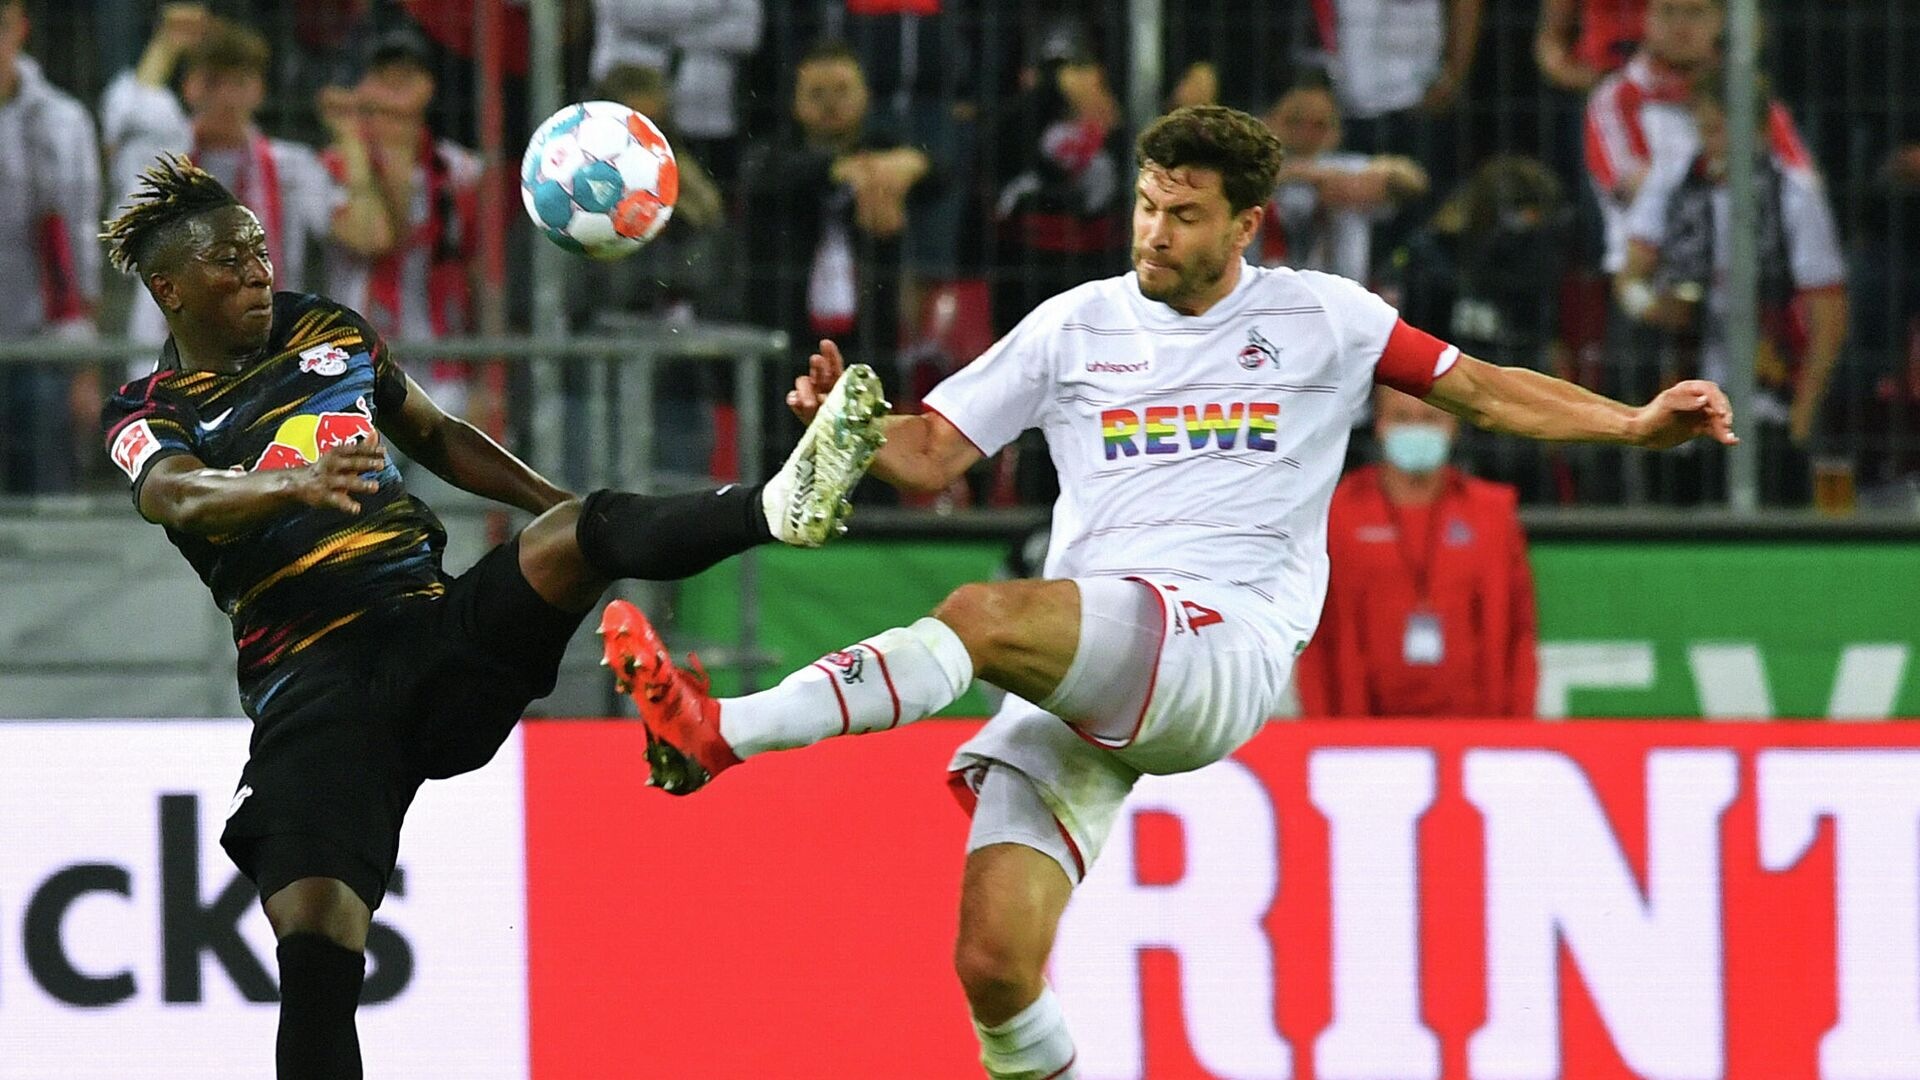 Cologne's German defender Jonas Hector (R) and Leipzig's Malian midfielder Amadou Haidara vie for the ball during the German first division Bundesliga football match 1 FC Cologne vs RB Leipzig, in Cologne, western Germany, on September 18, 2021. (Photo by UWE KRAFT / AFP) / DFL REGULATIONS PROHIBIT ANY USE OF PHOTOGRAPHS AS IMAGE SEQUENCES AND/OR QUASI-VIDEO - РИА Новости, 1920, 18.09.2021